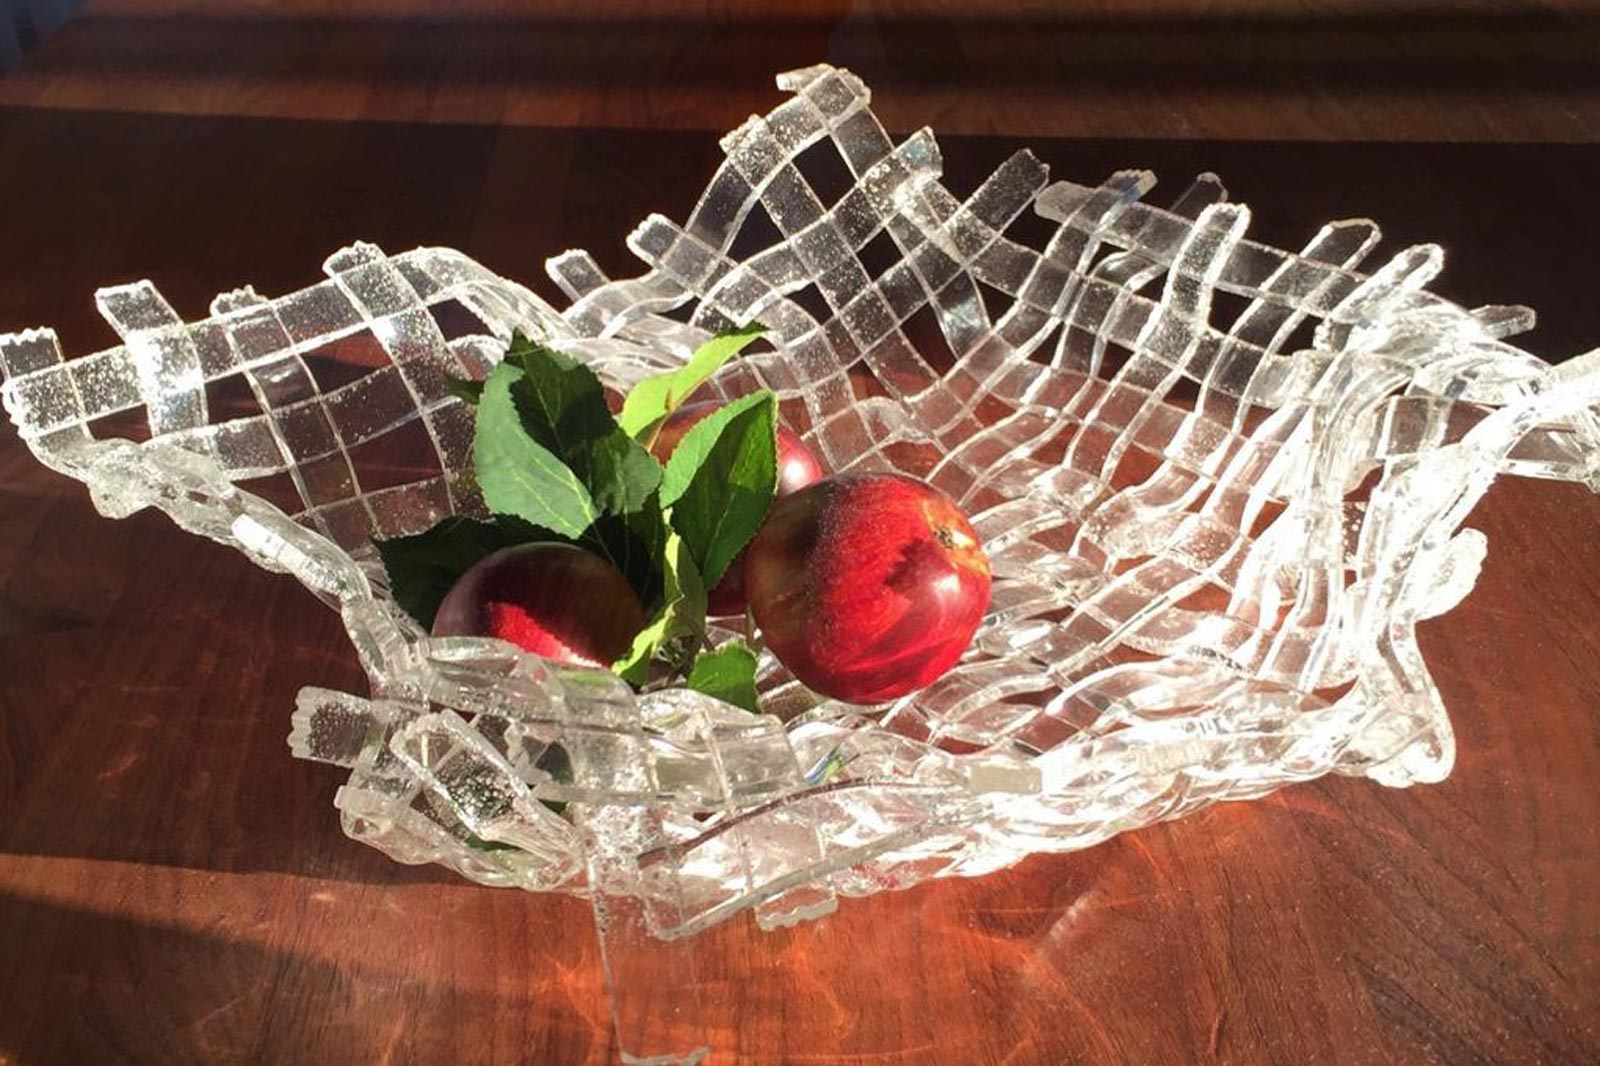 Plexiglass fruit bowl by FREWAG